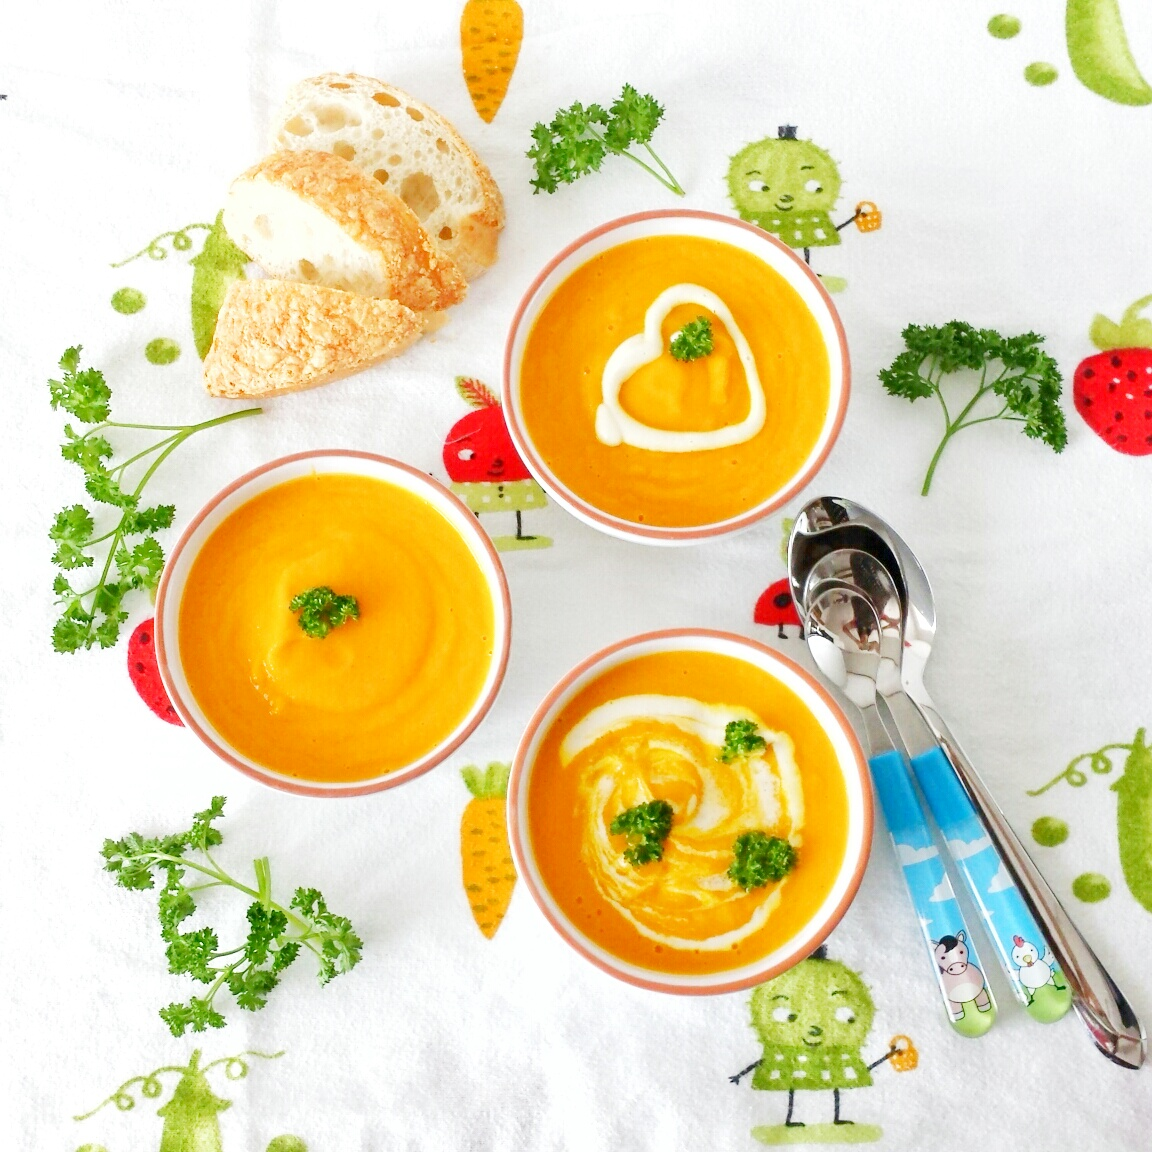 Carrot-tumeric-puree